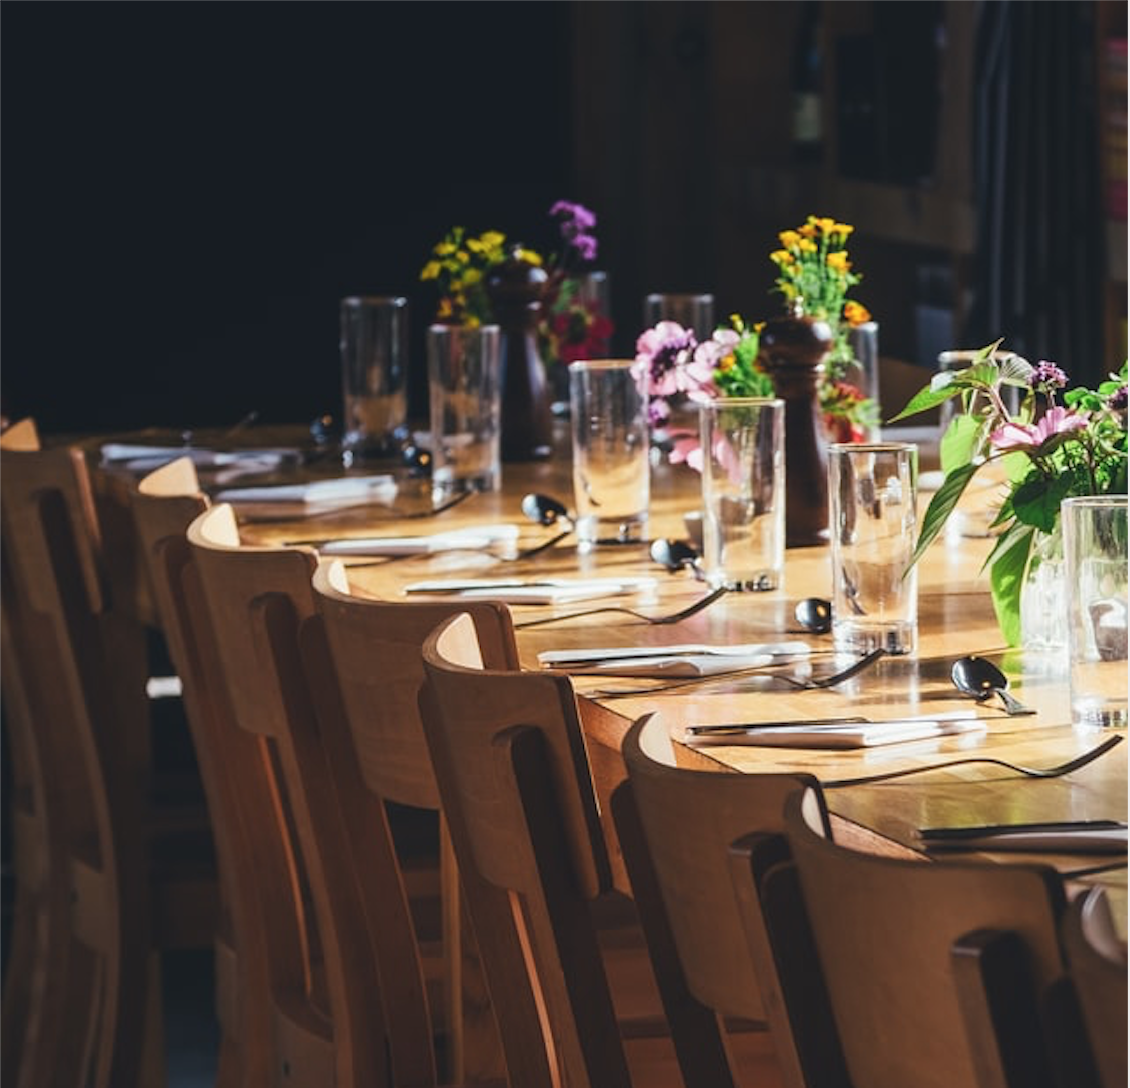 A low-lit table setting awaits guests, with colorful floral arragements and crystal glasses.